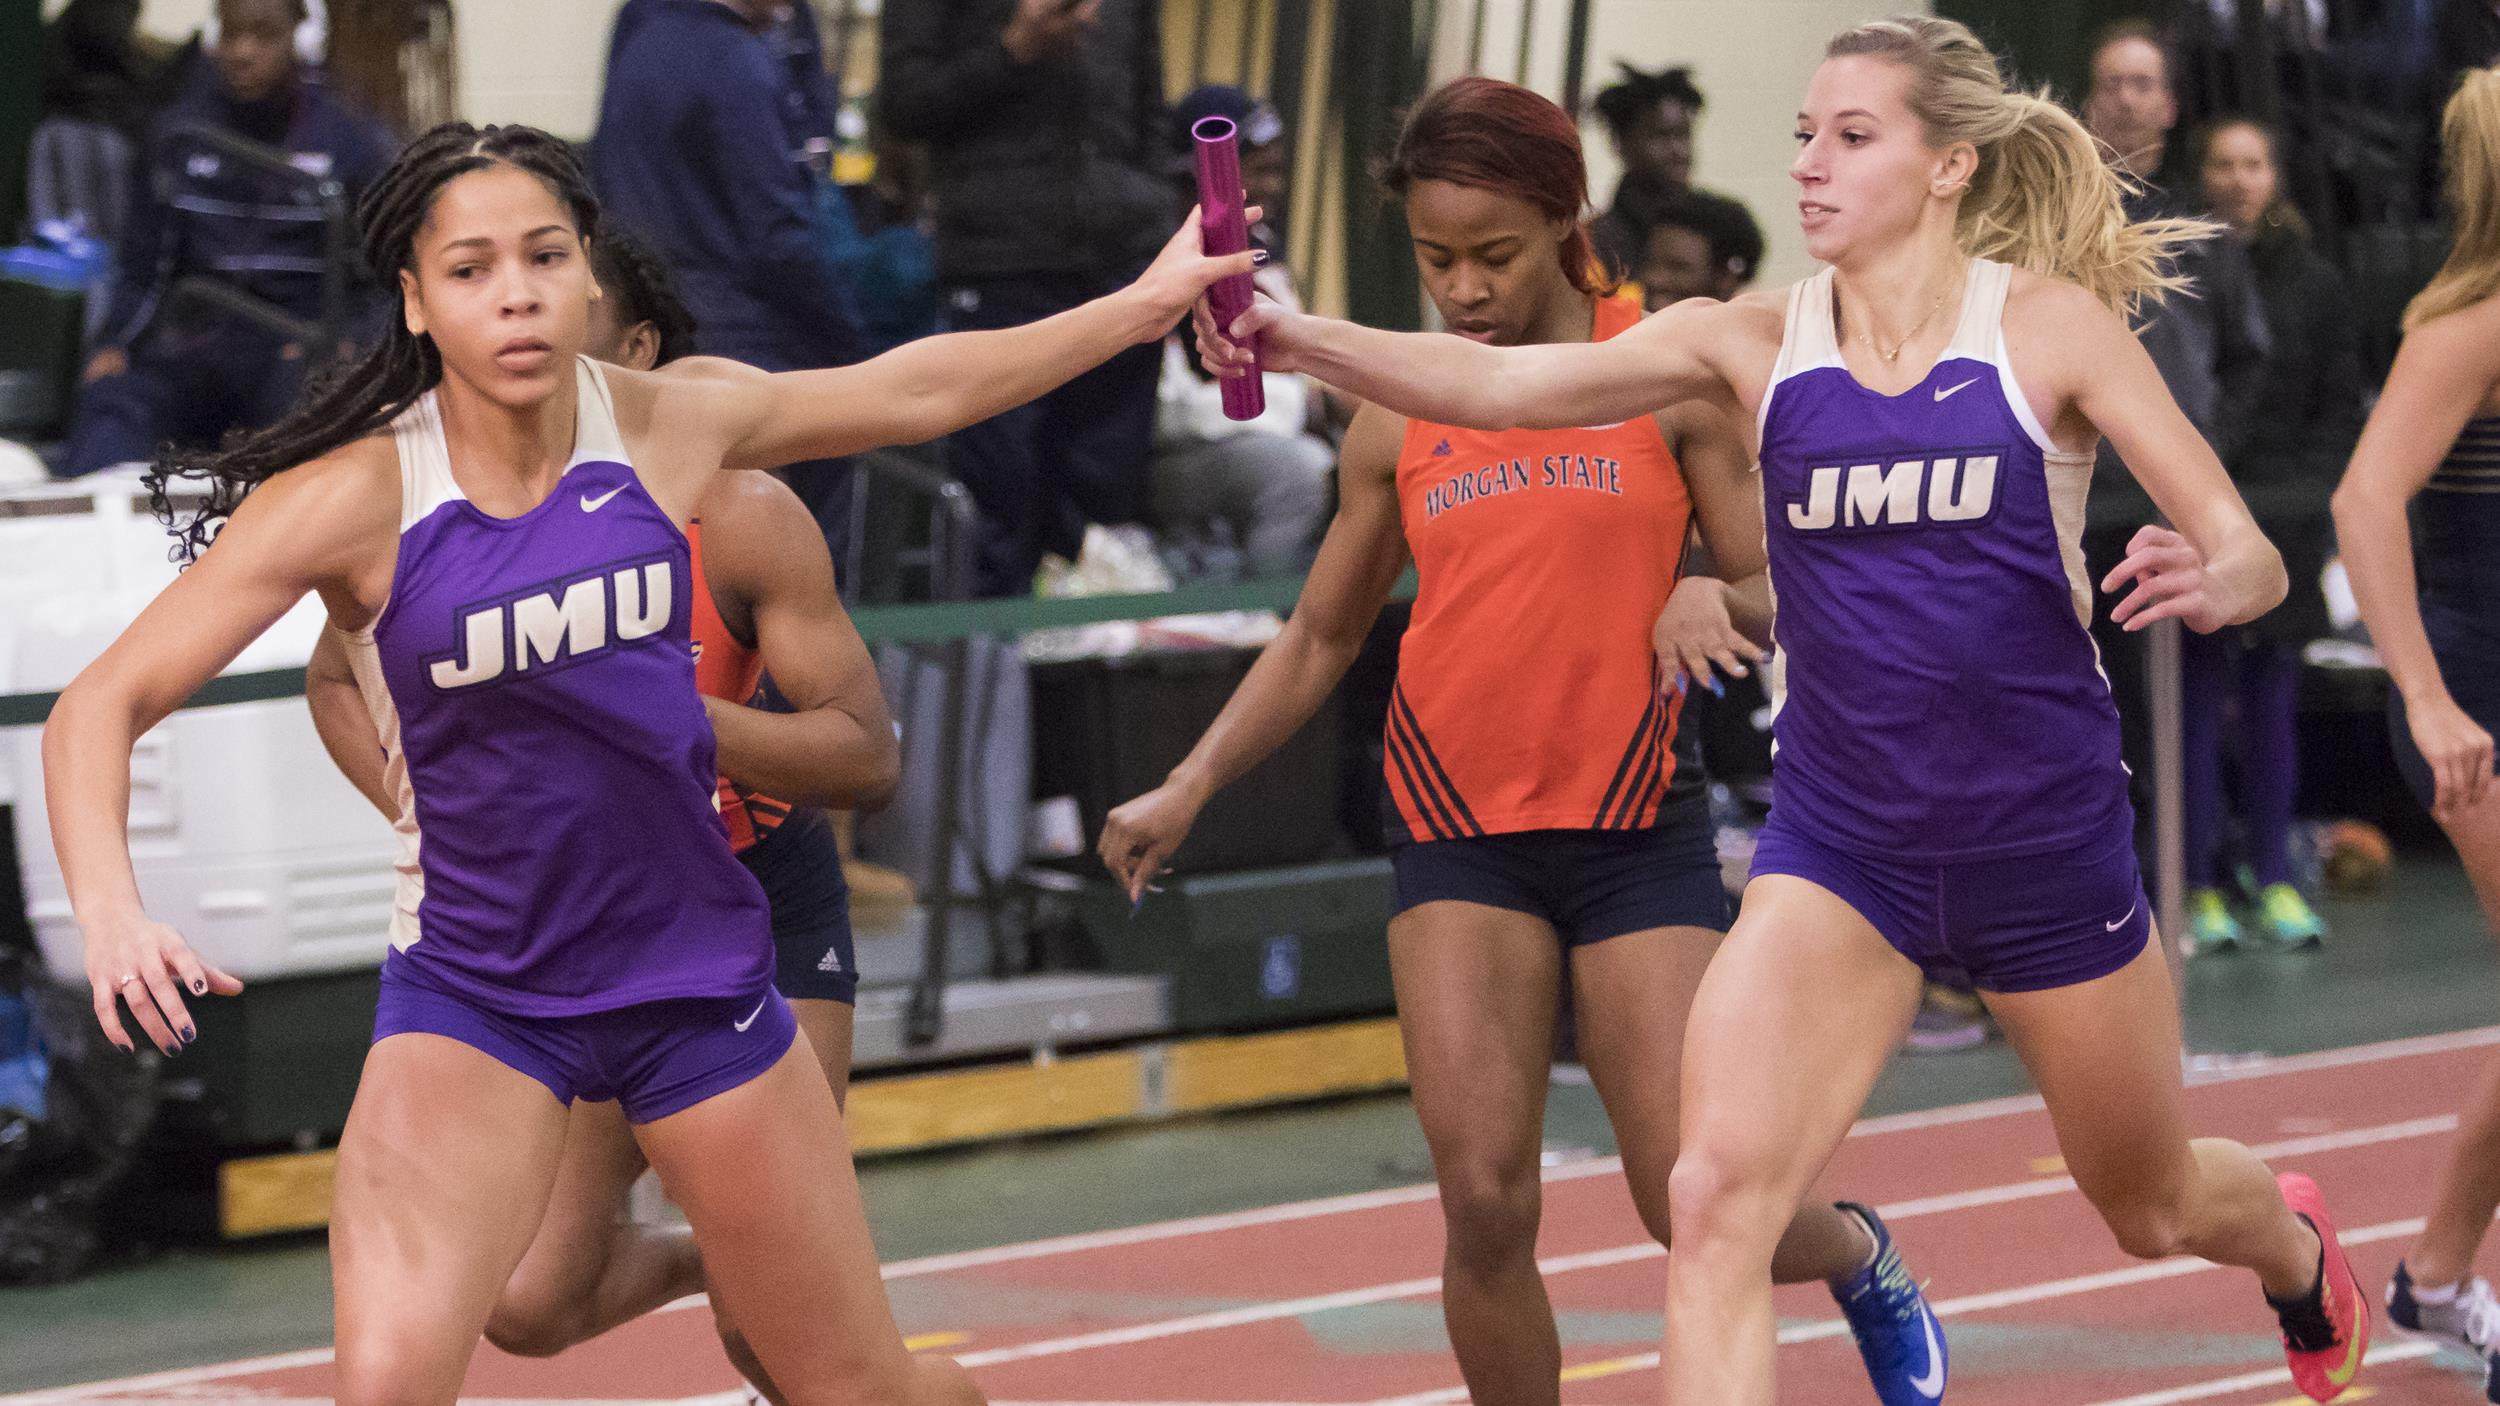 Track & Field: JMU Wraps Up Weekend At The Keydet Invitational)